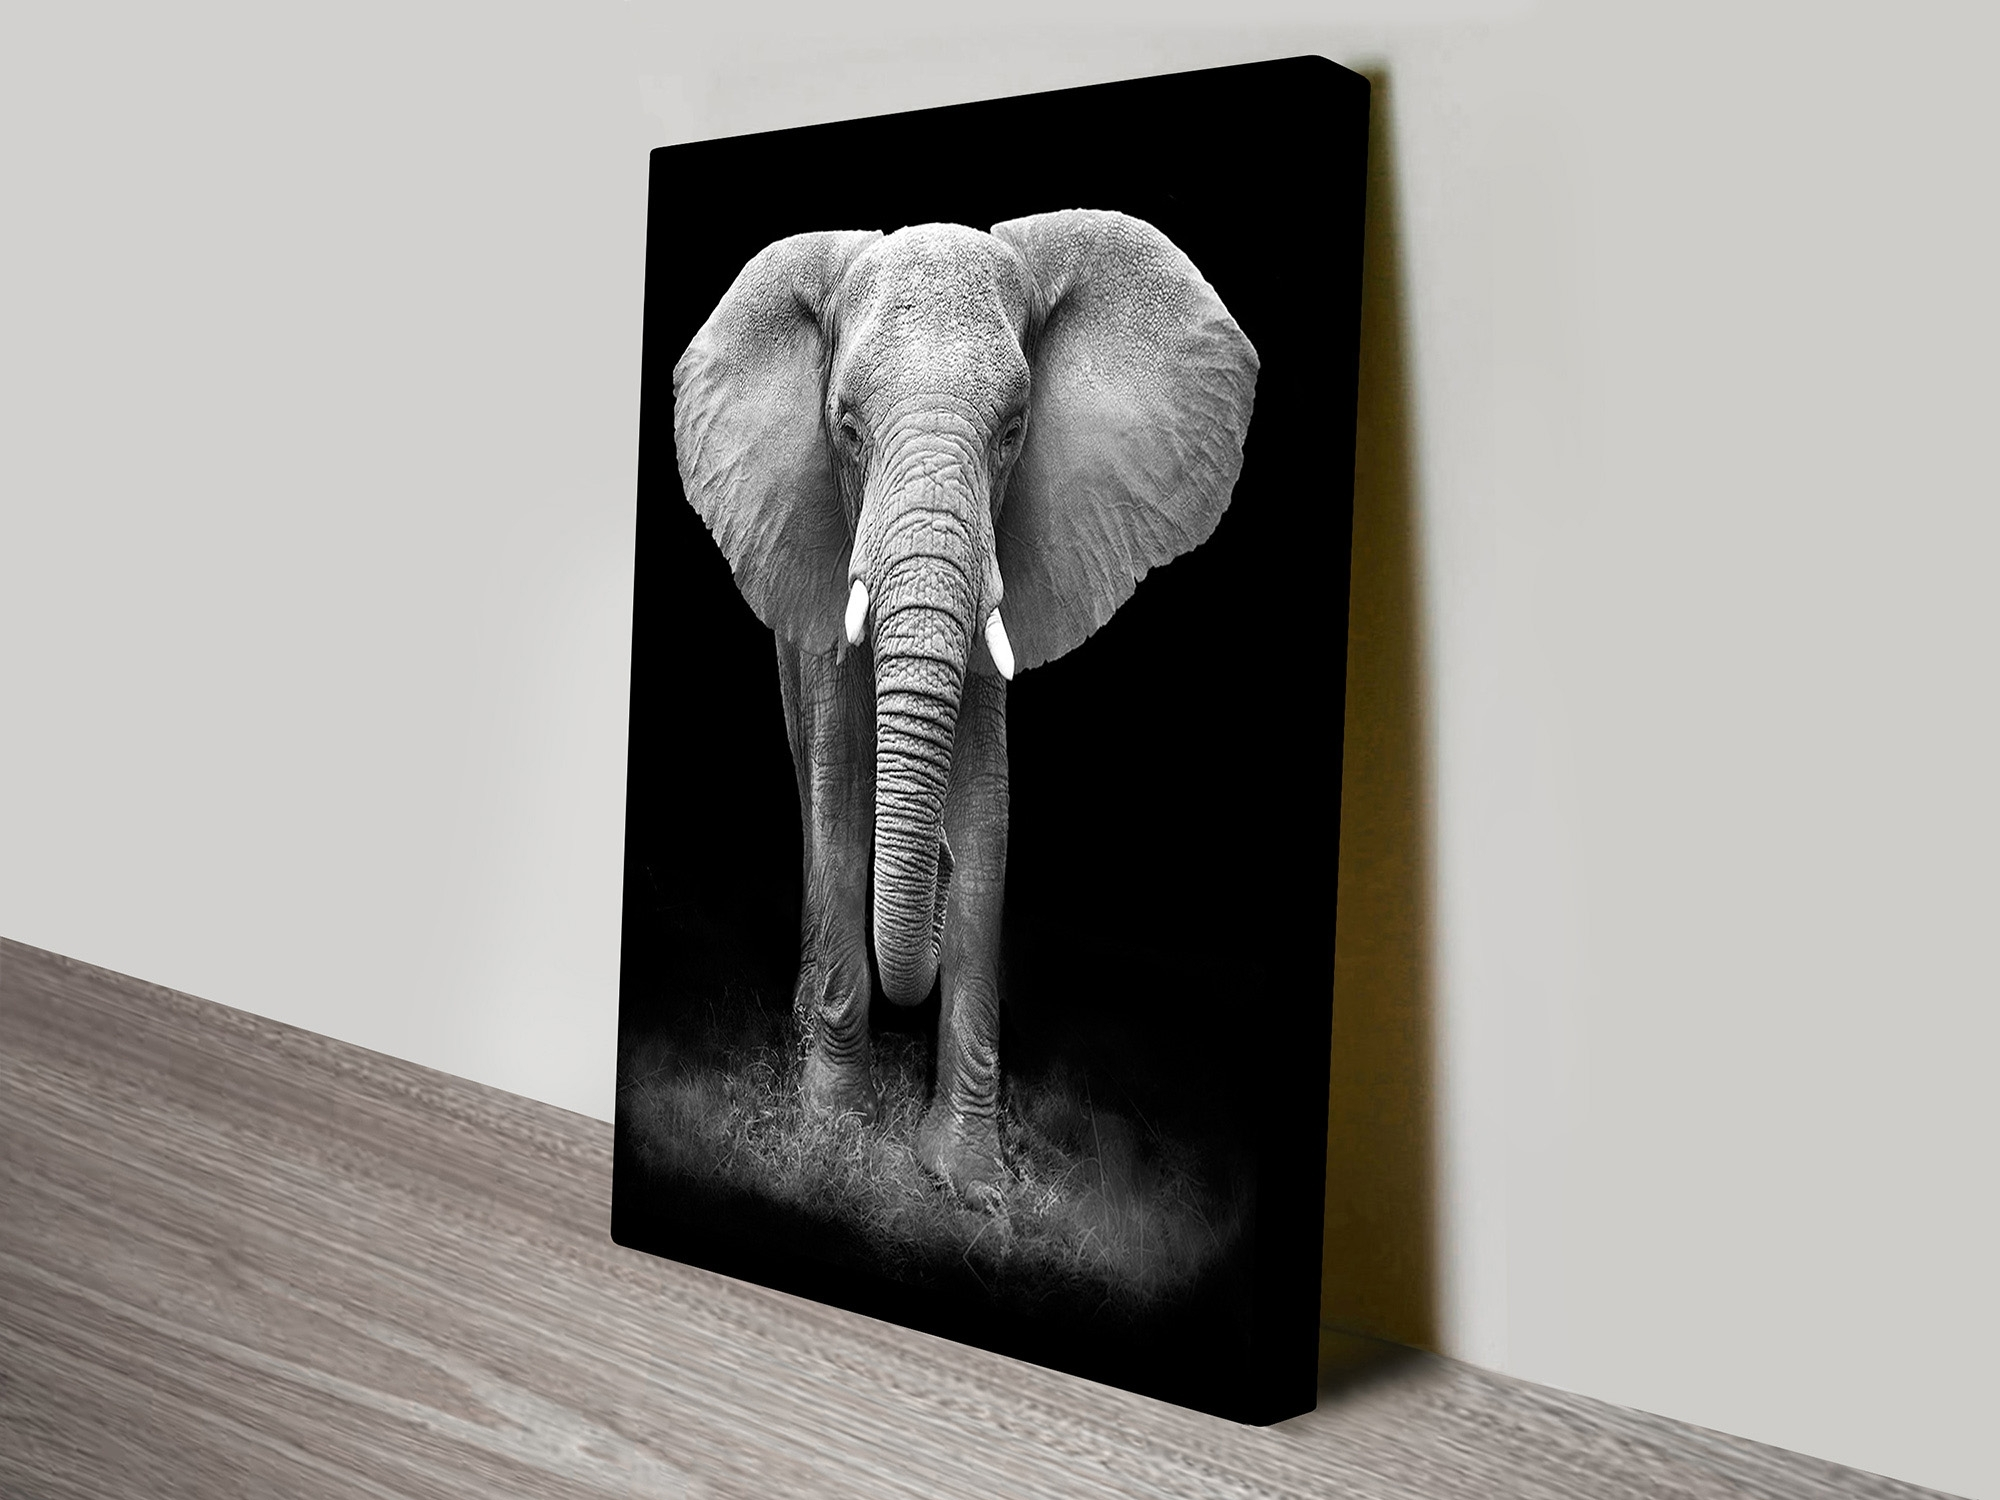 Gentle Giant Elephant Canvas Wall Art – Blue Horizon Prints With Regard To Most Popular Elephant Canvas Wall Art (View 12 of 20)